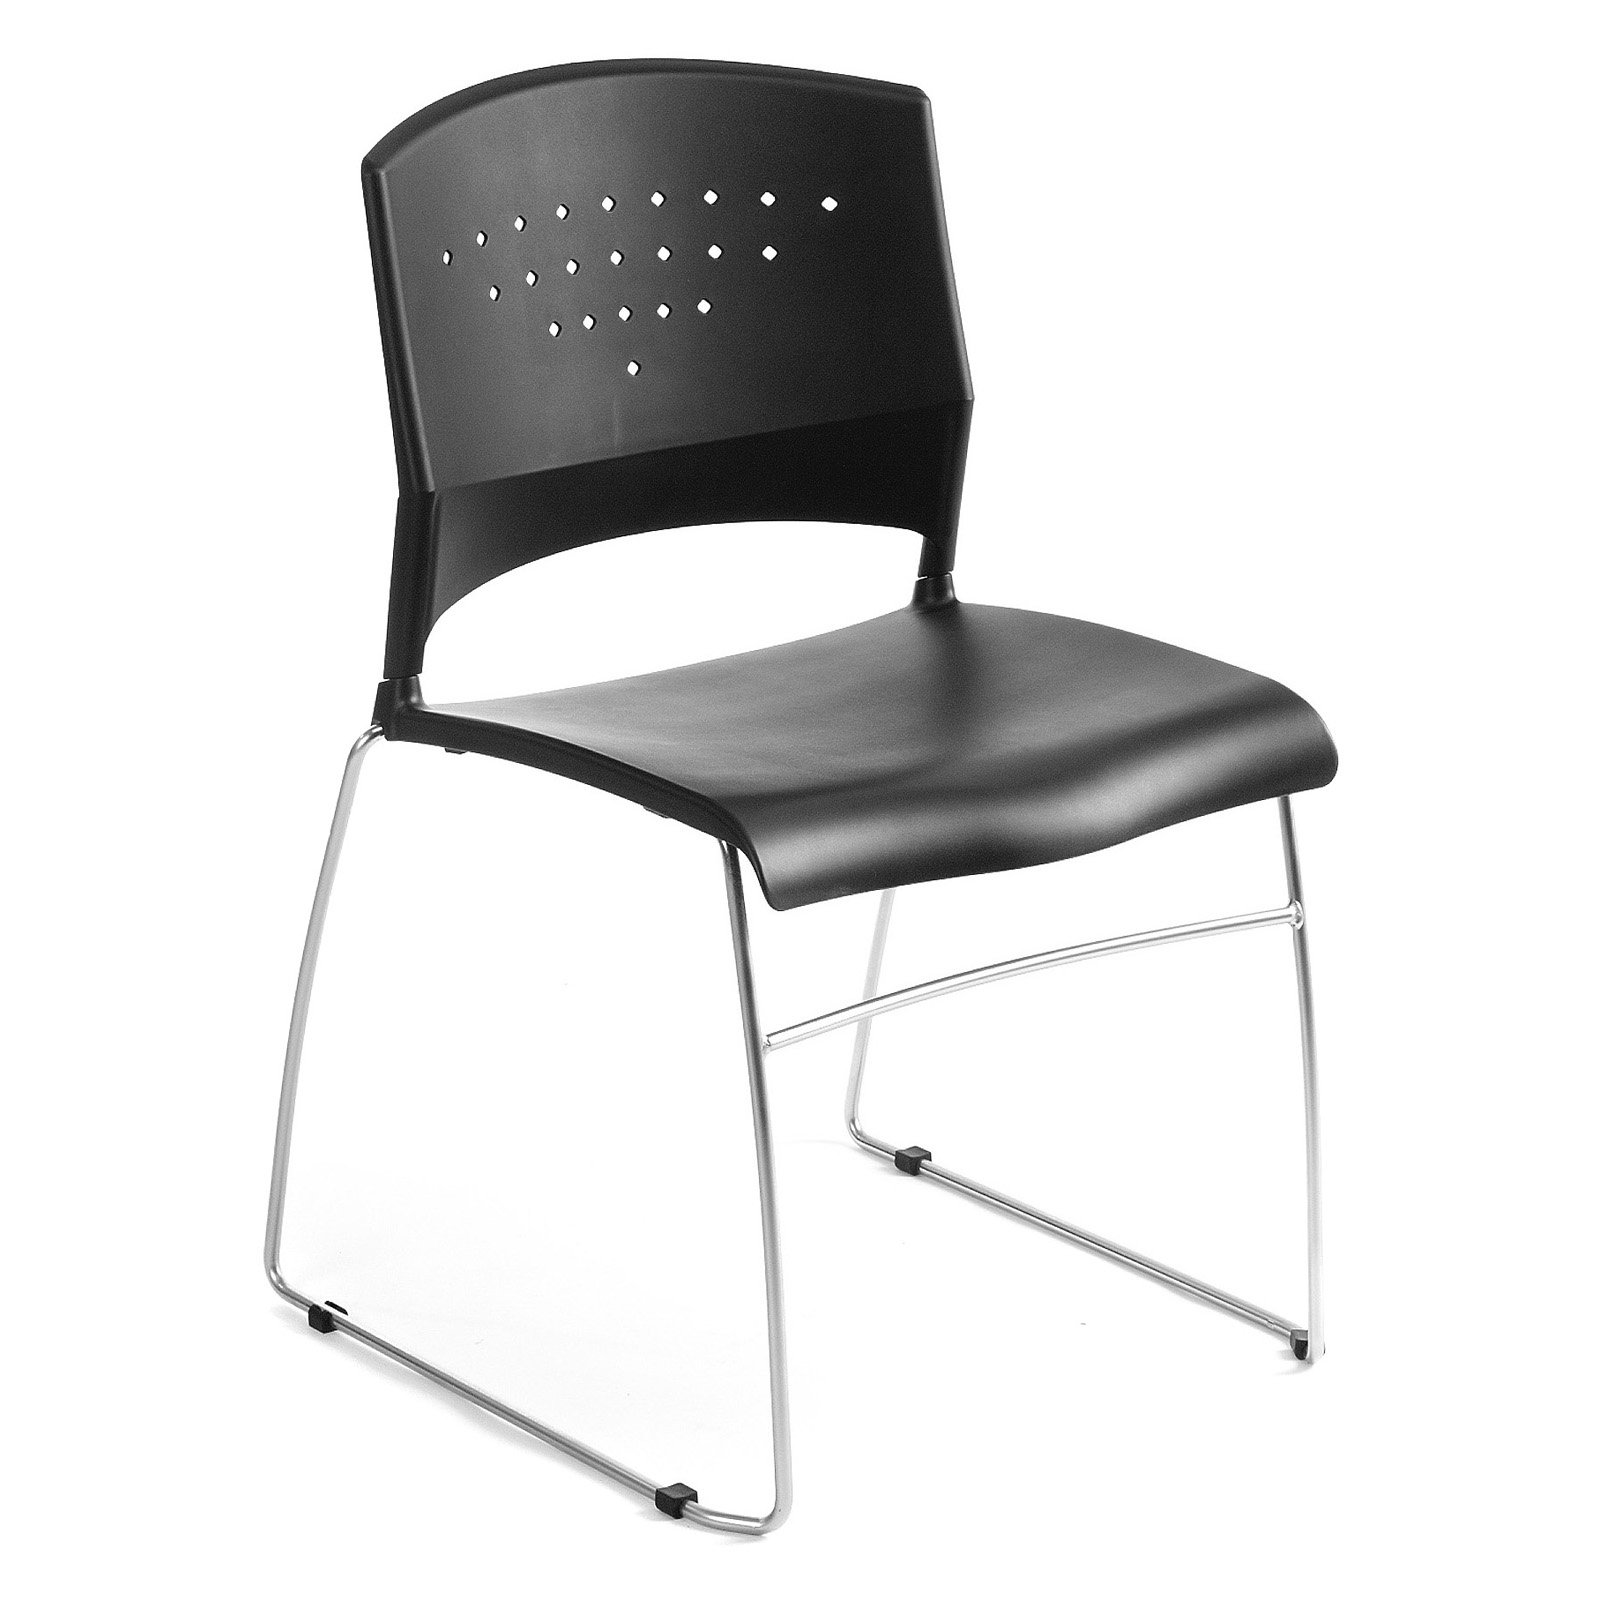 Boss Office Products Black Stack Chair With Chrome Frame, 1Pc Pack